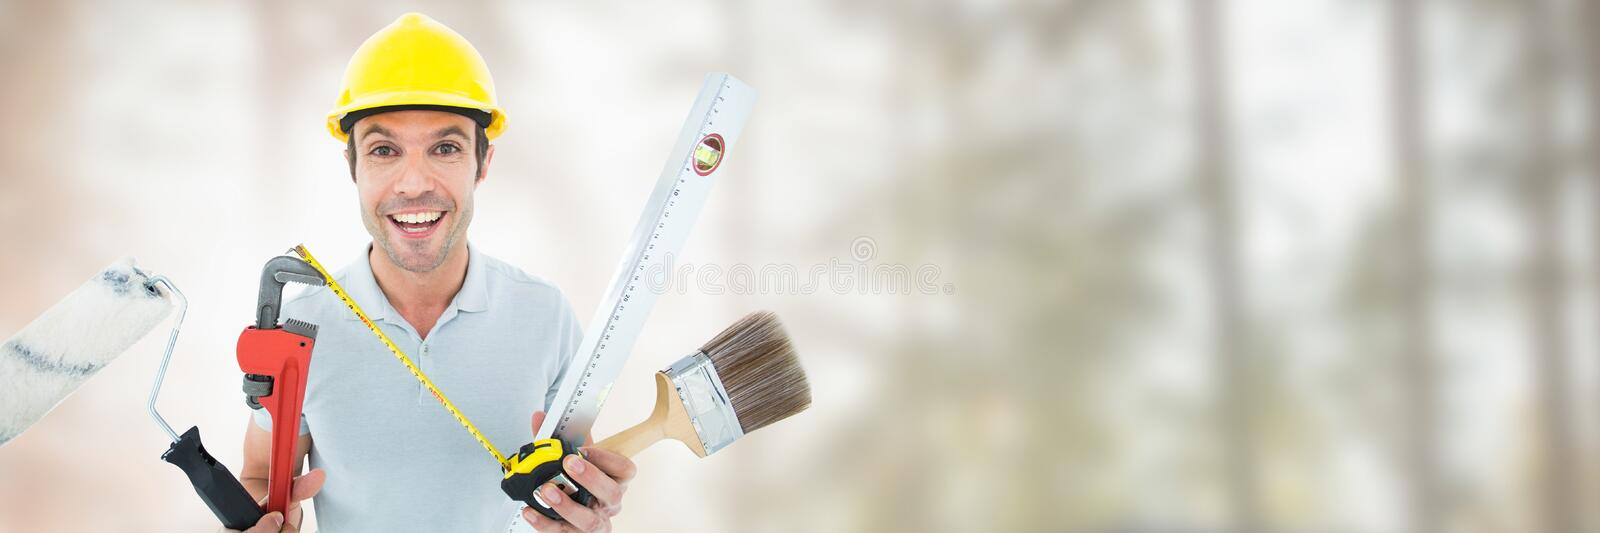 Construction Worker on building site with tools stock image